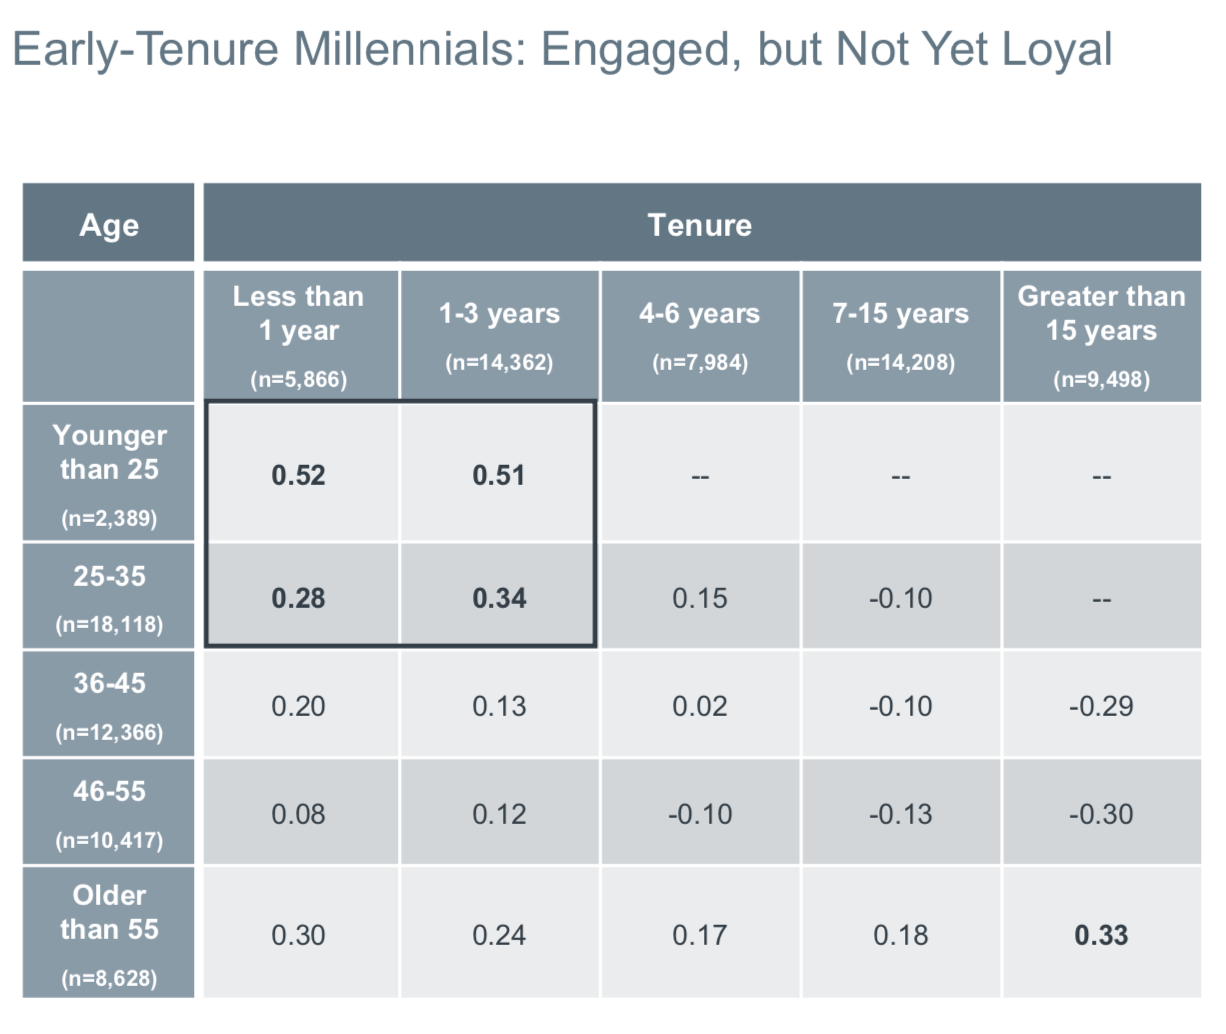 Advisory Board (2016). PDF Snapshot. Retrieved from: https://www.advisory.com/-/media/Advisory-com/Research/NEC/Research-Study/2017/NEC-Win-Millennials-Loyalty.pdf